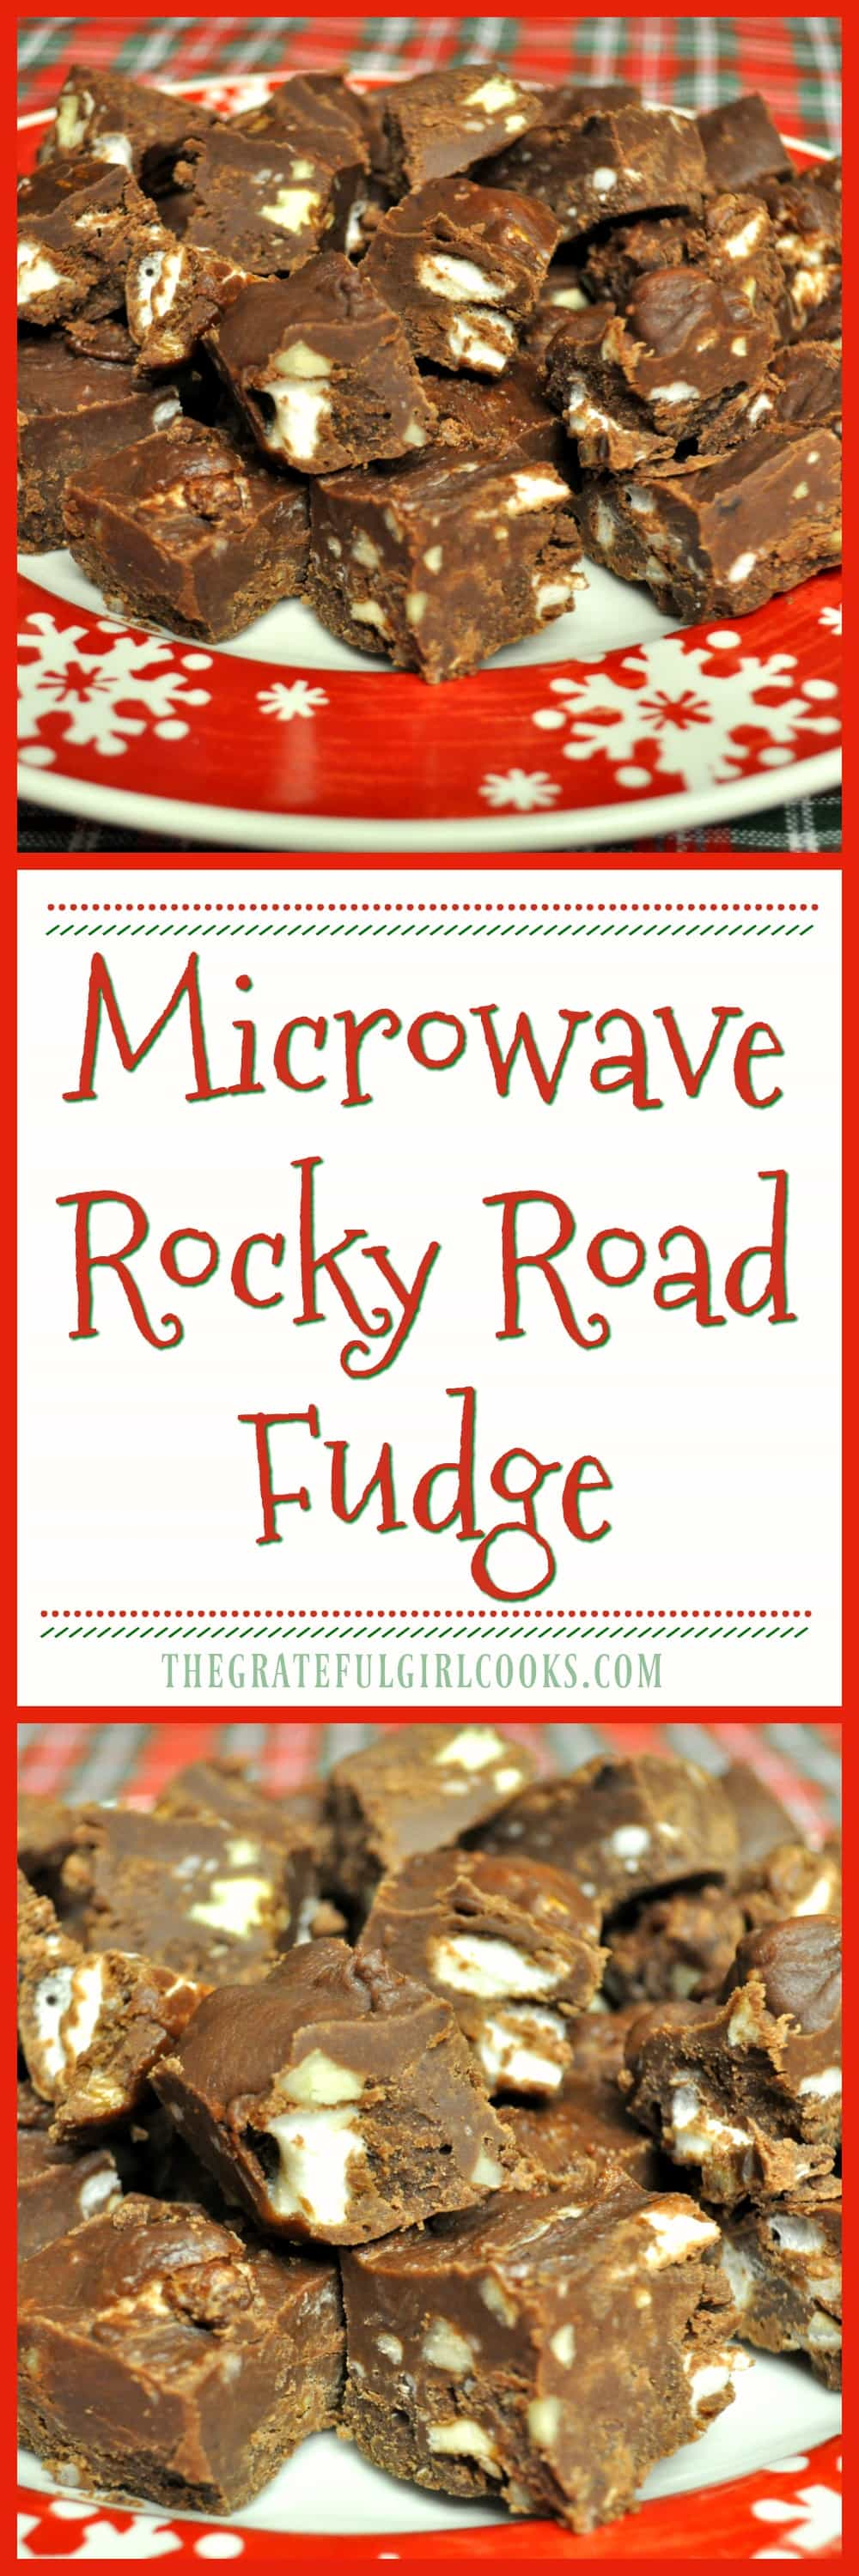 Microwave Rocky Road Fudge / The Grateful Girl Cooks! You'll love this easy, creamy rocky road fudge, with marshmallows and pecans... and it only takes 5 minutes to make in a microwave!